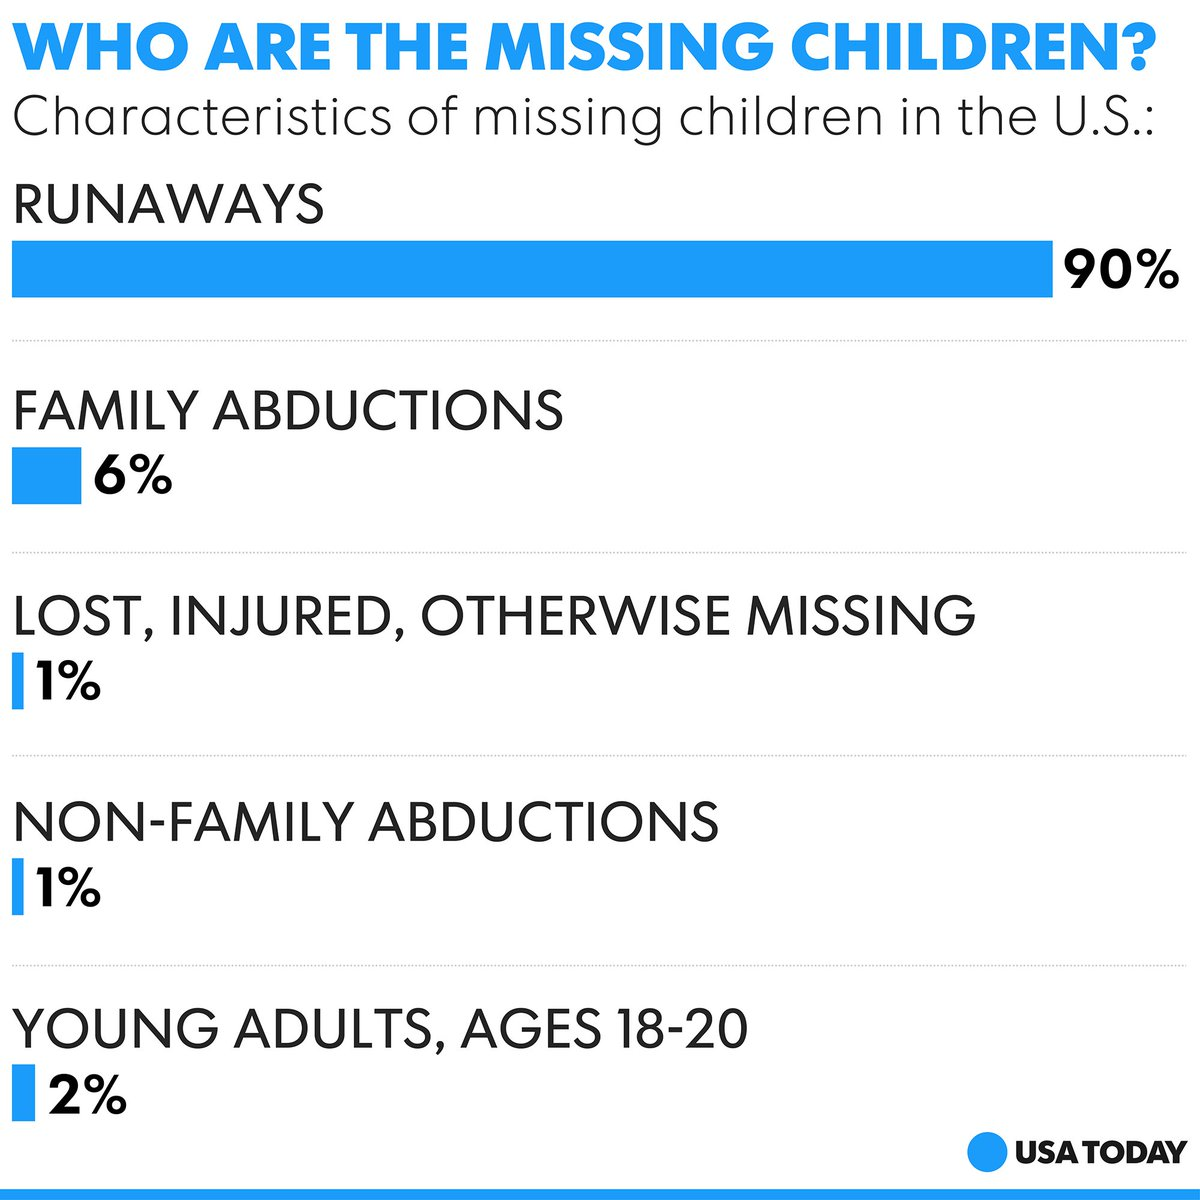 The vast majority of missing children are runaways. Many are lured away by technology.